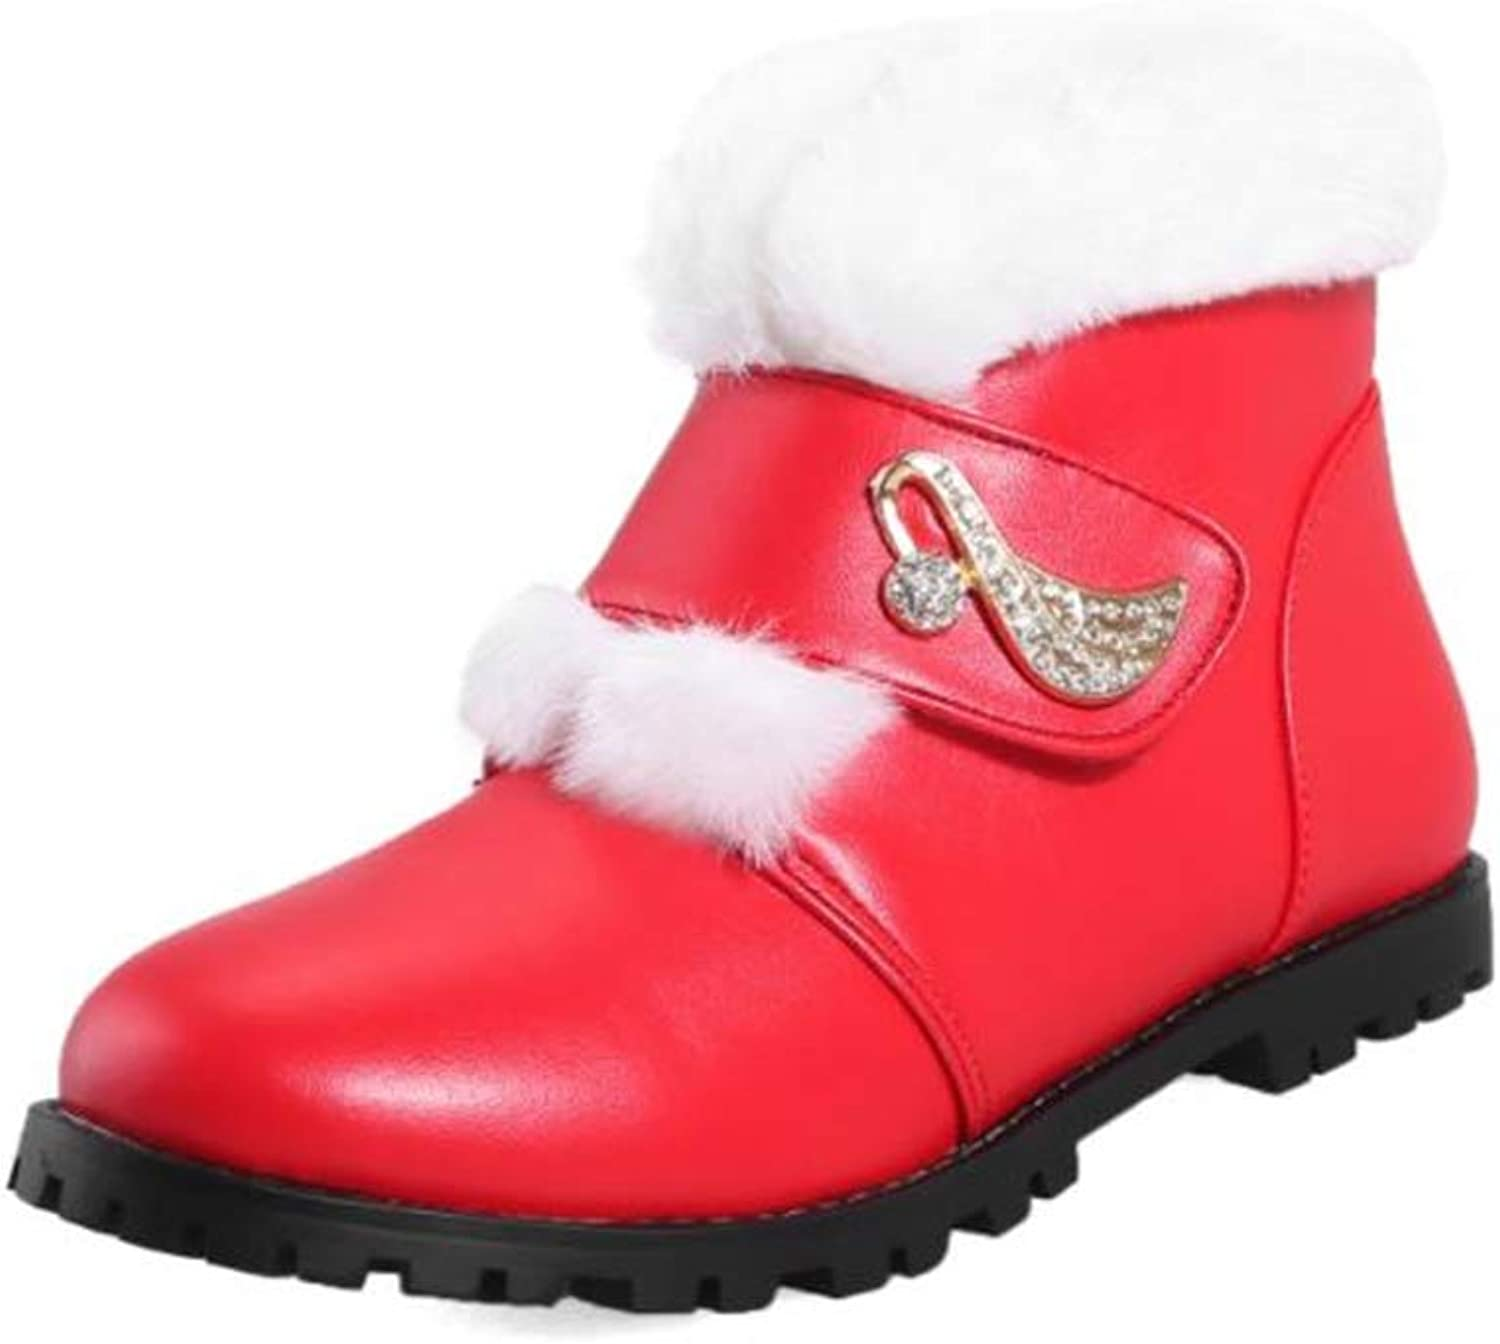 2018 Hot Winter Women Snow Boots Female Casual Ankle Boots Warm shoes